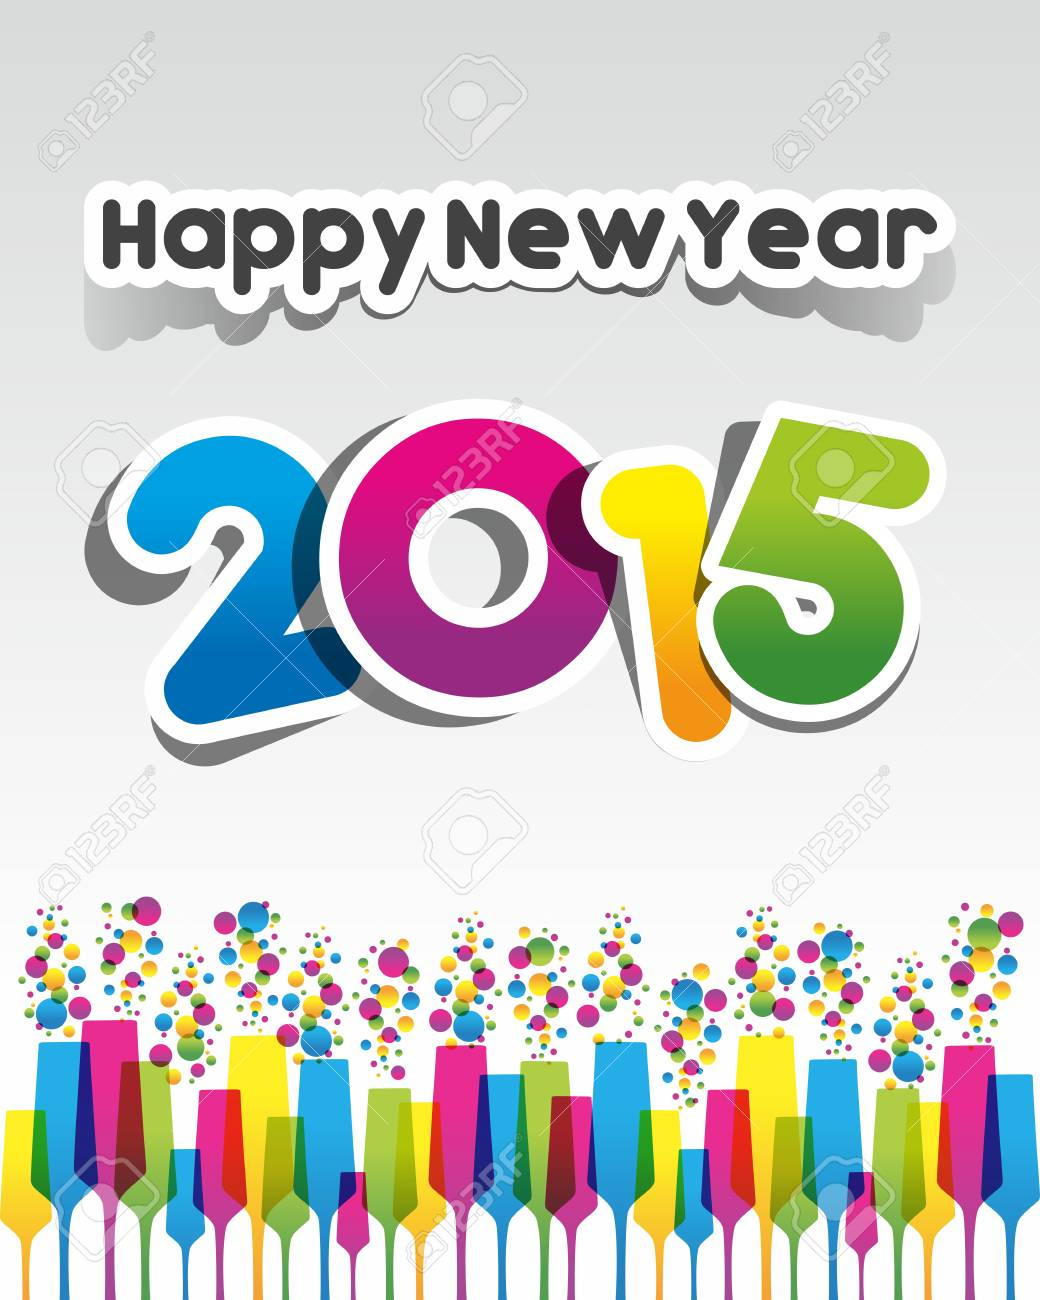 Happy New Year 2015 Greeting Card Vector Illustration Royalty Free